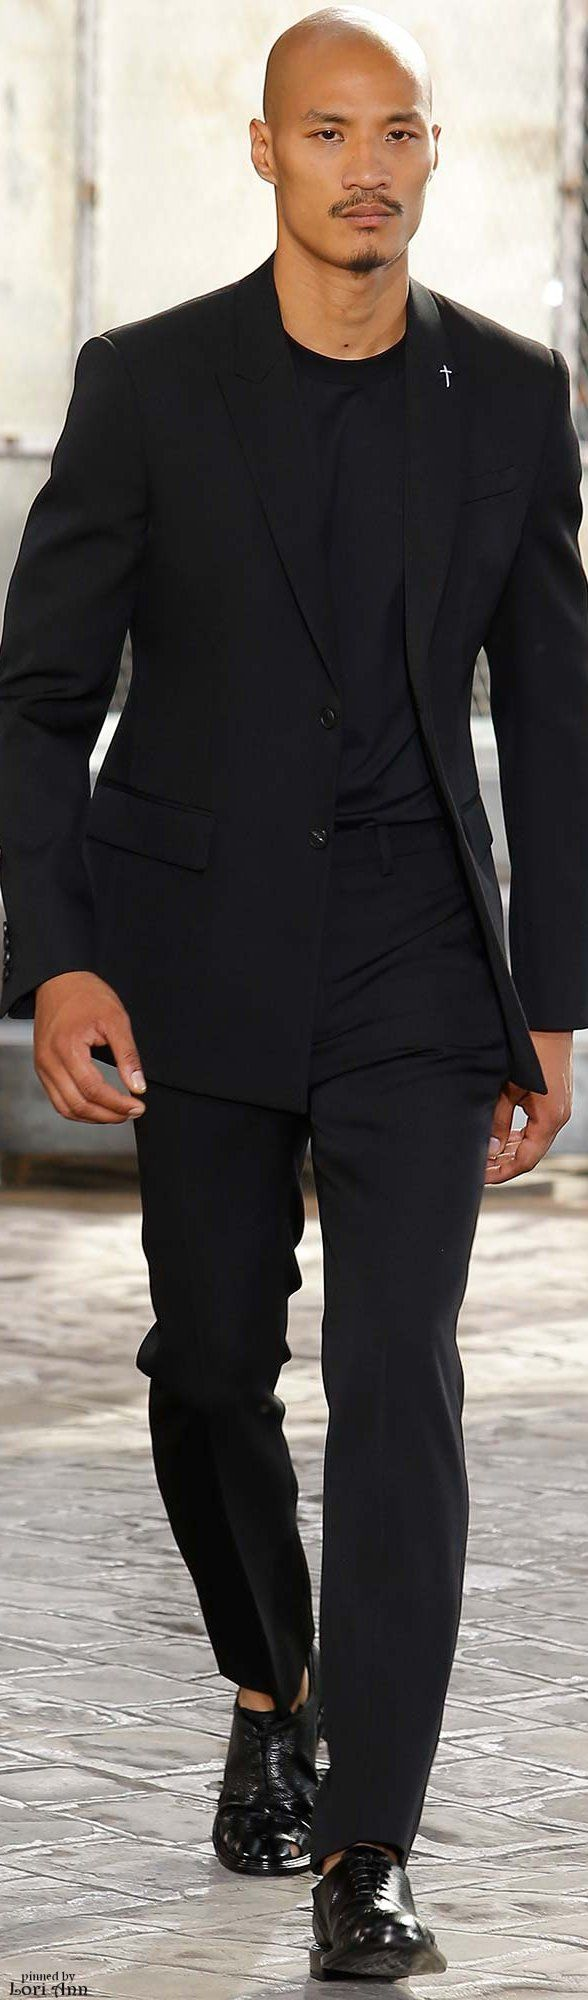 Givenchy Spring 2016 | black suit | black on black  | Men's Fashion | Menswear | Shop at designerclothingfans.com